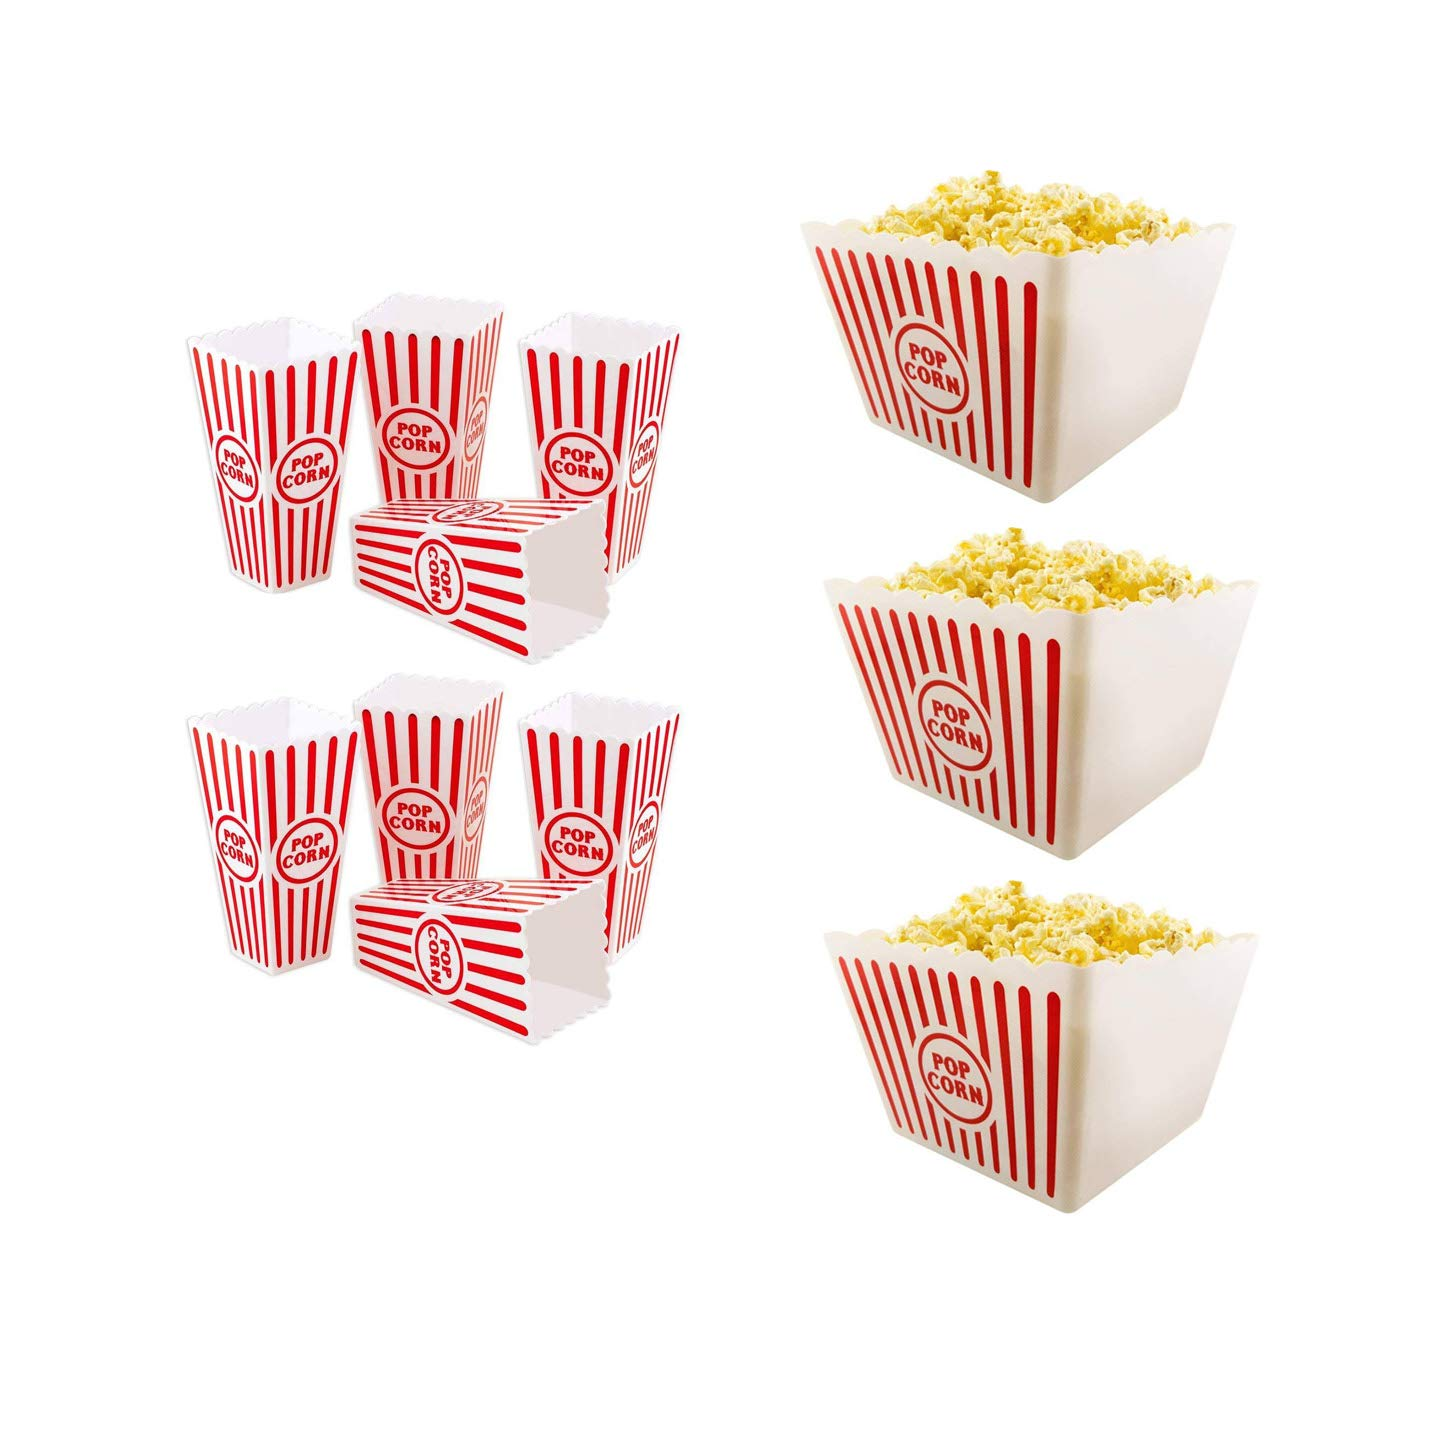 "Plastic Red & White Striped Classic Popcorn Containers for Movie Night Bundle 8 1/2"" Square x 7"" Deep & 6.11"" Tall x 3.8"" Square (3) Dad's Lake House"